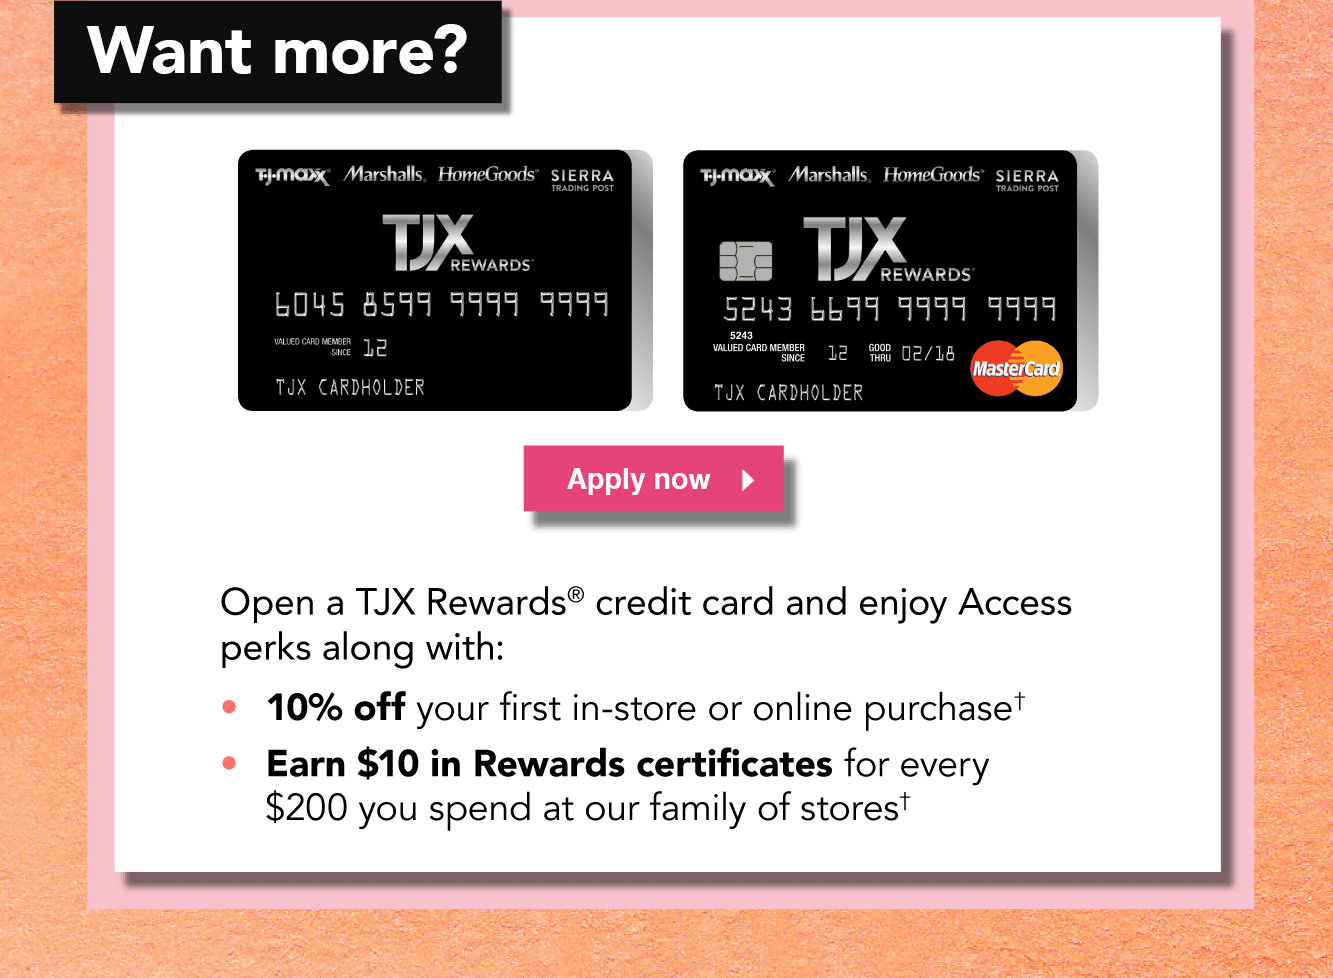 TJ Maxx : Private Shopping Exclusive - Join TJX Rewards Today